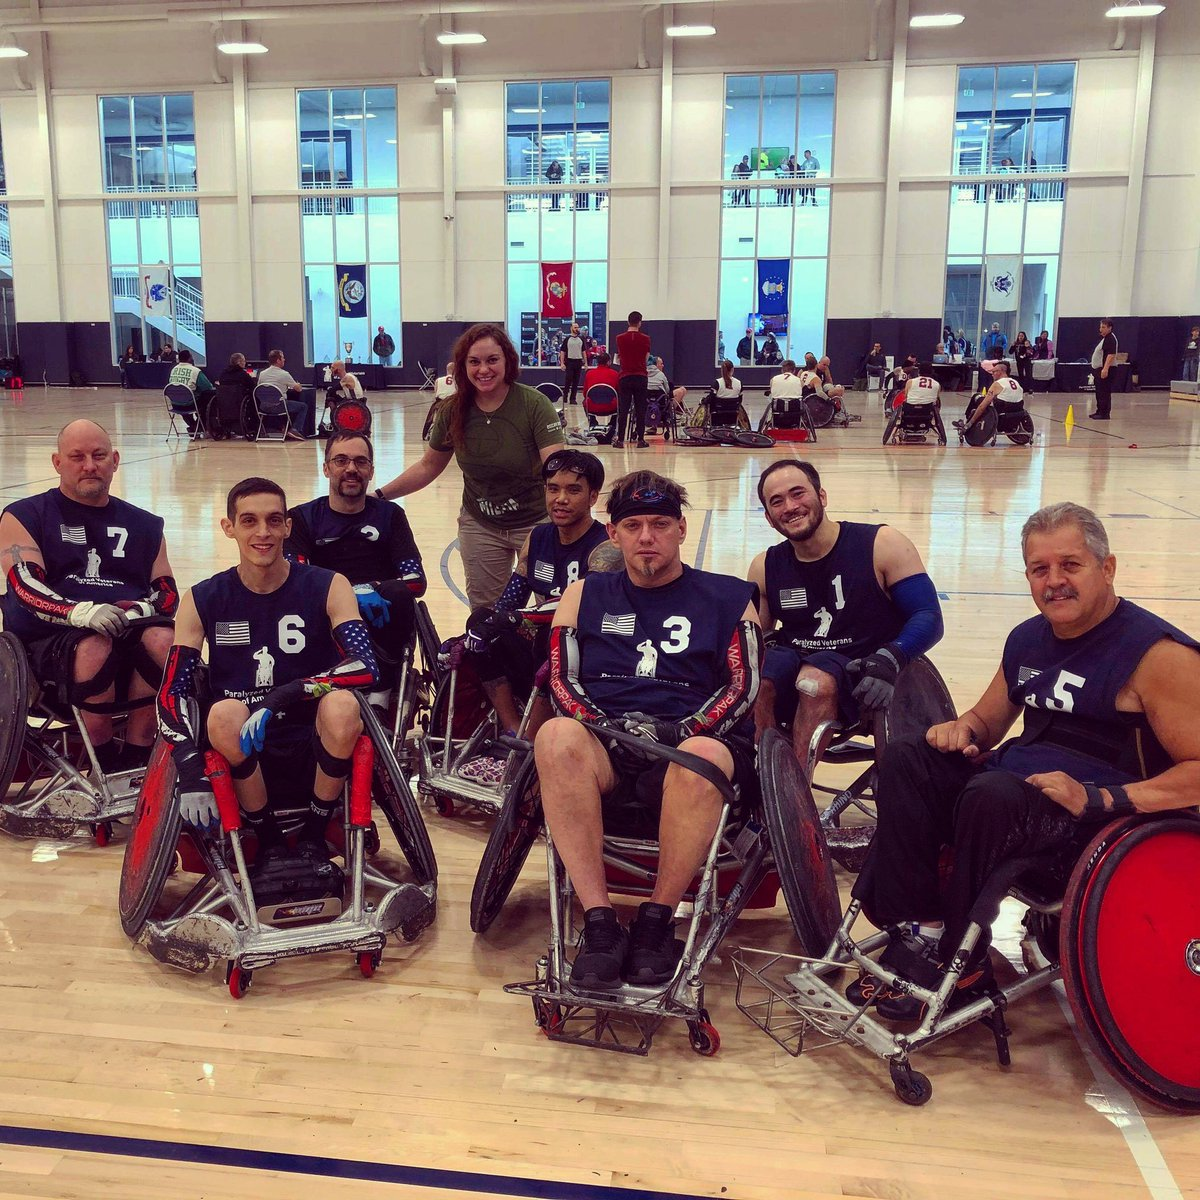 Had a great time at the #PVACodeOfHonor rugby tournament this weekend! Thanks for having me everyone, and I hope lots was learned! @PVA1946